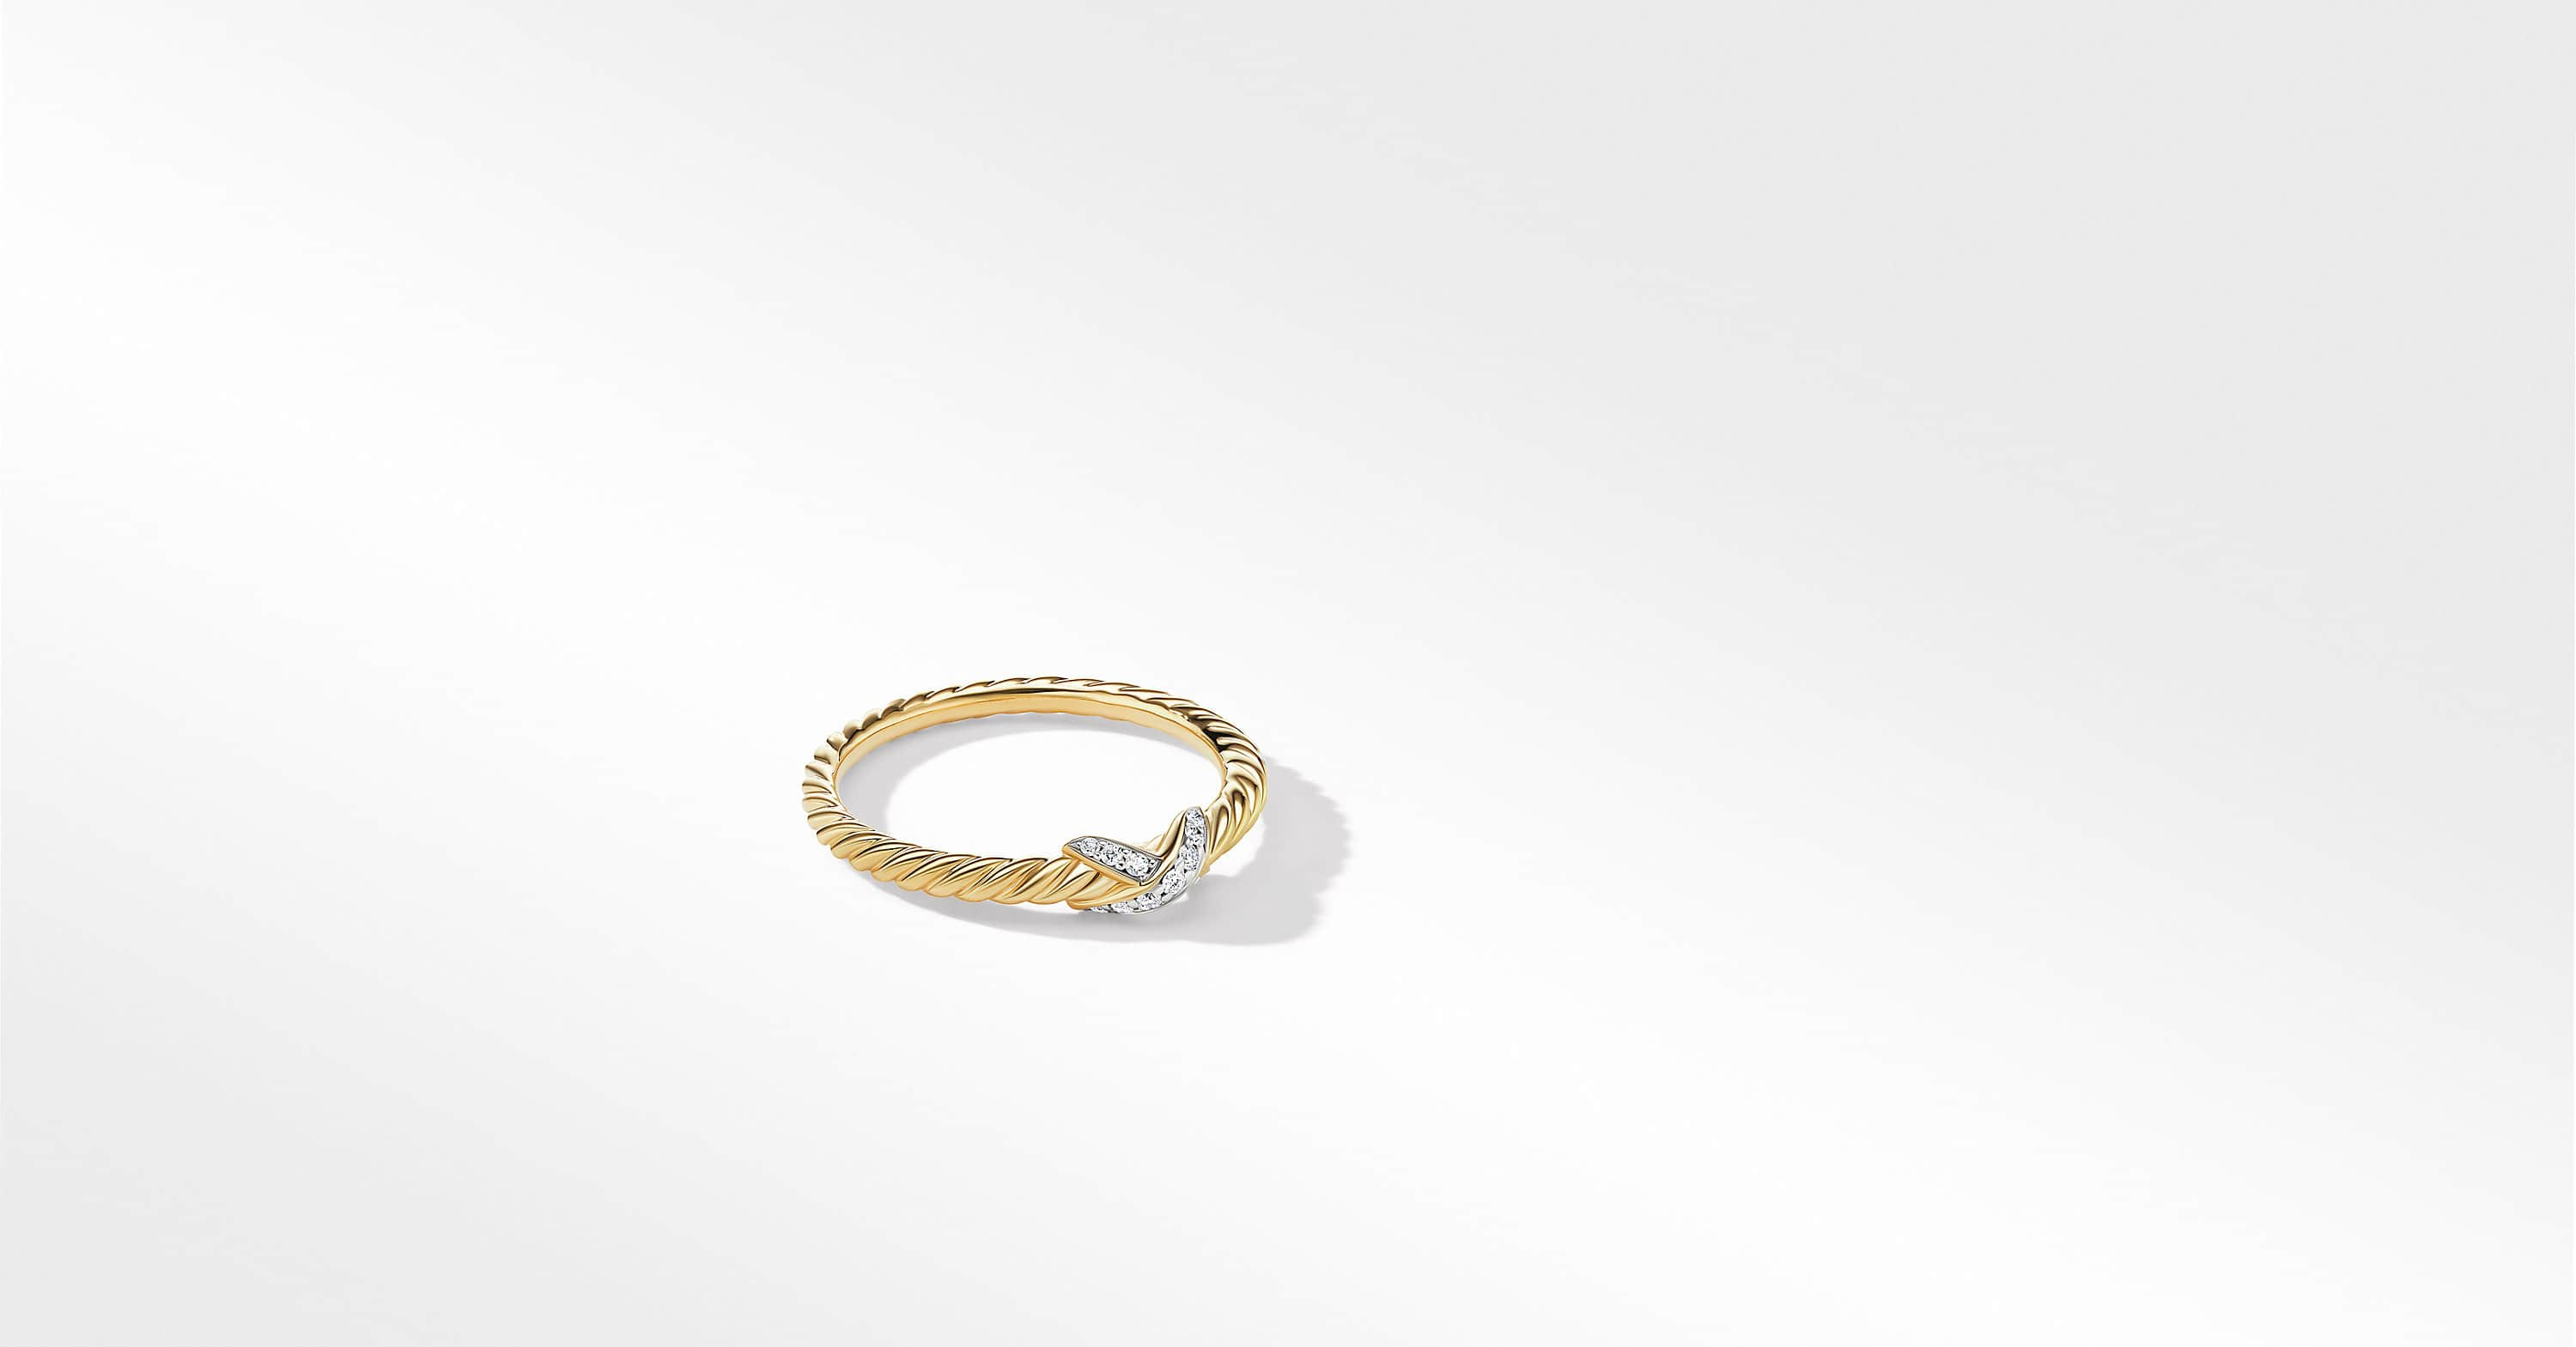 Petite X Ring in 18K Yellow Gold with Diamonds, 2.2mm